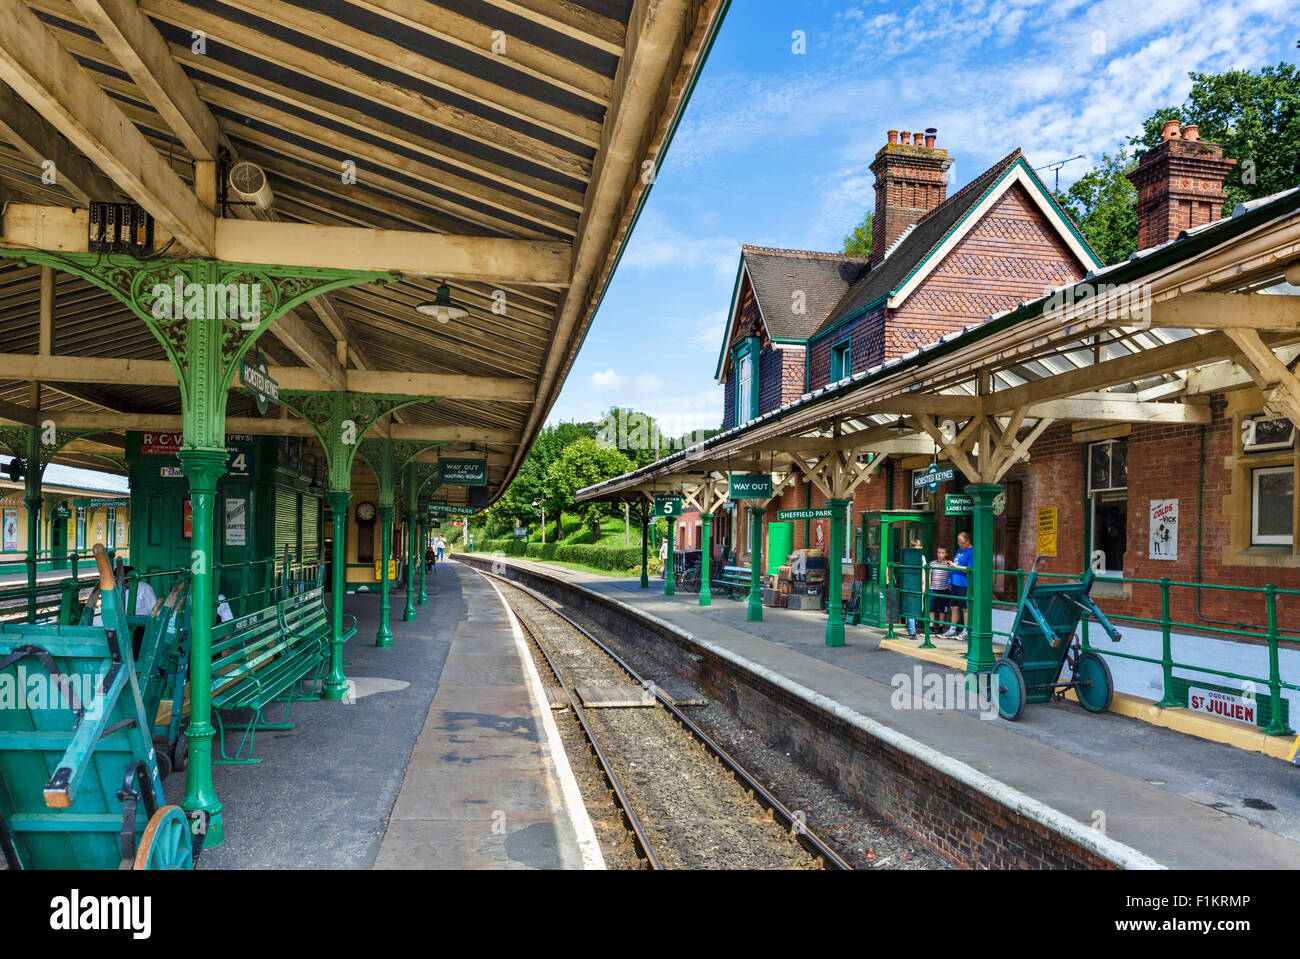 Horsted Keynes Railway Station on the Bluebell Railway line